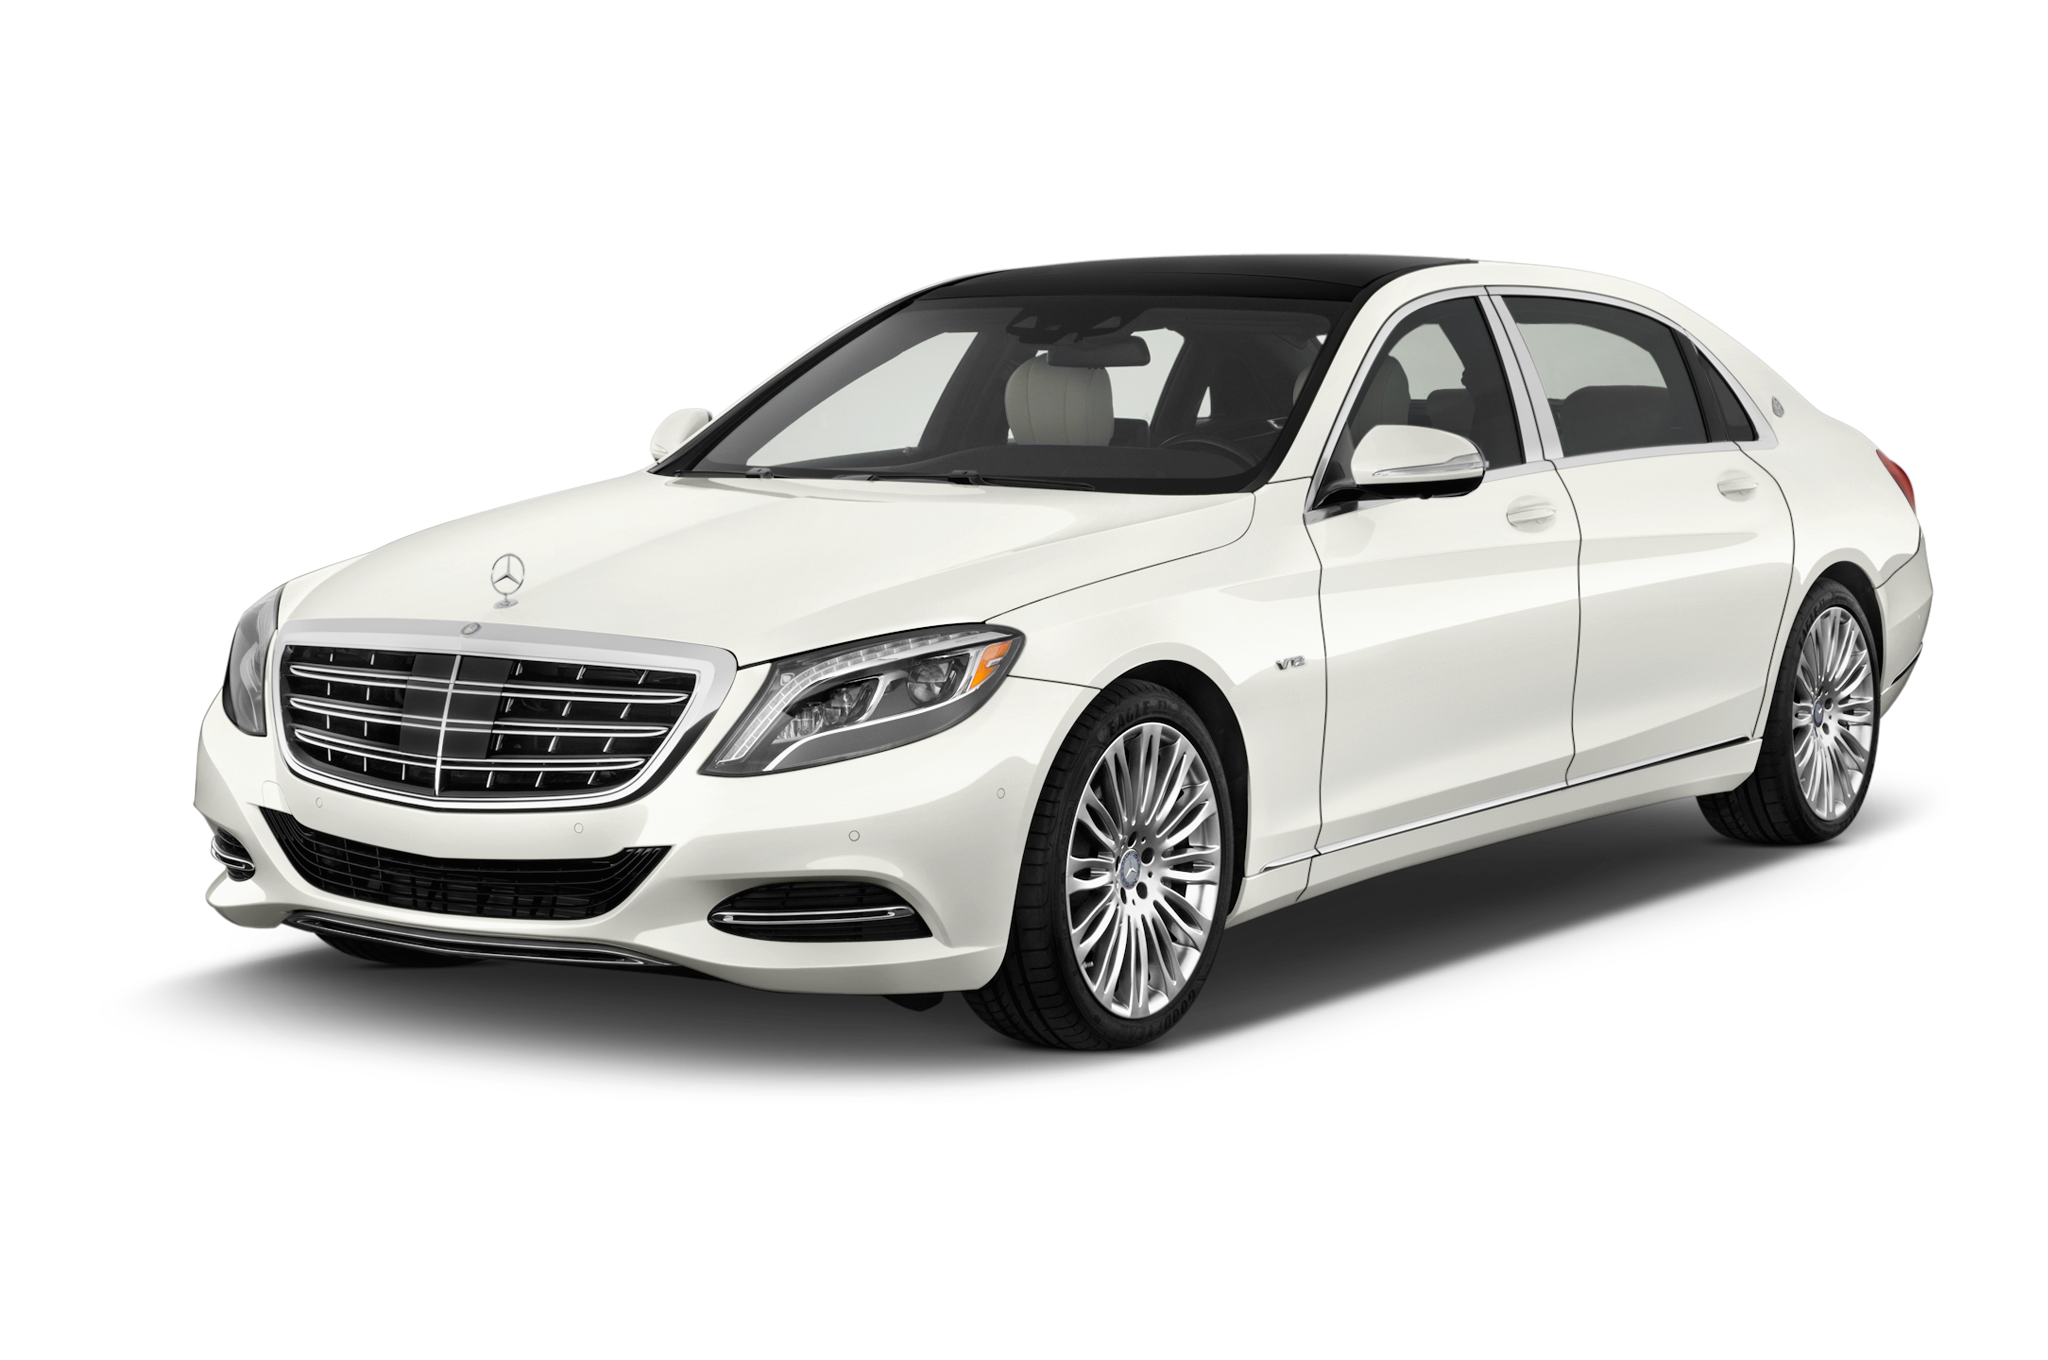 Mercedes Benz PNG Images Transparent Free Download.